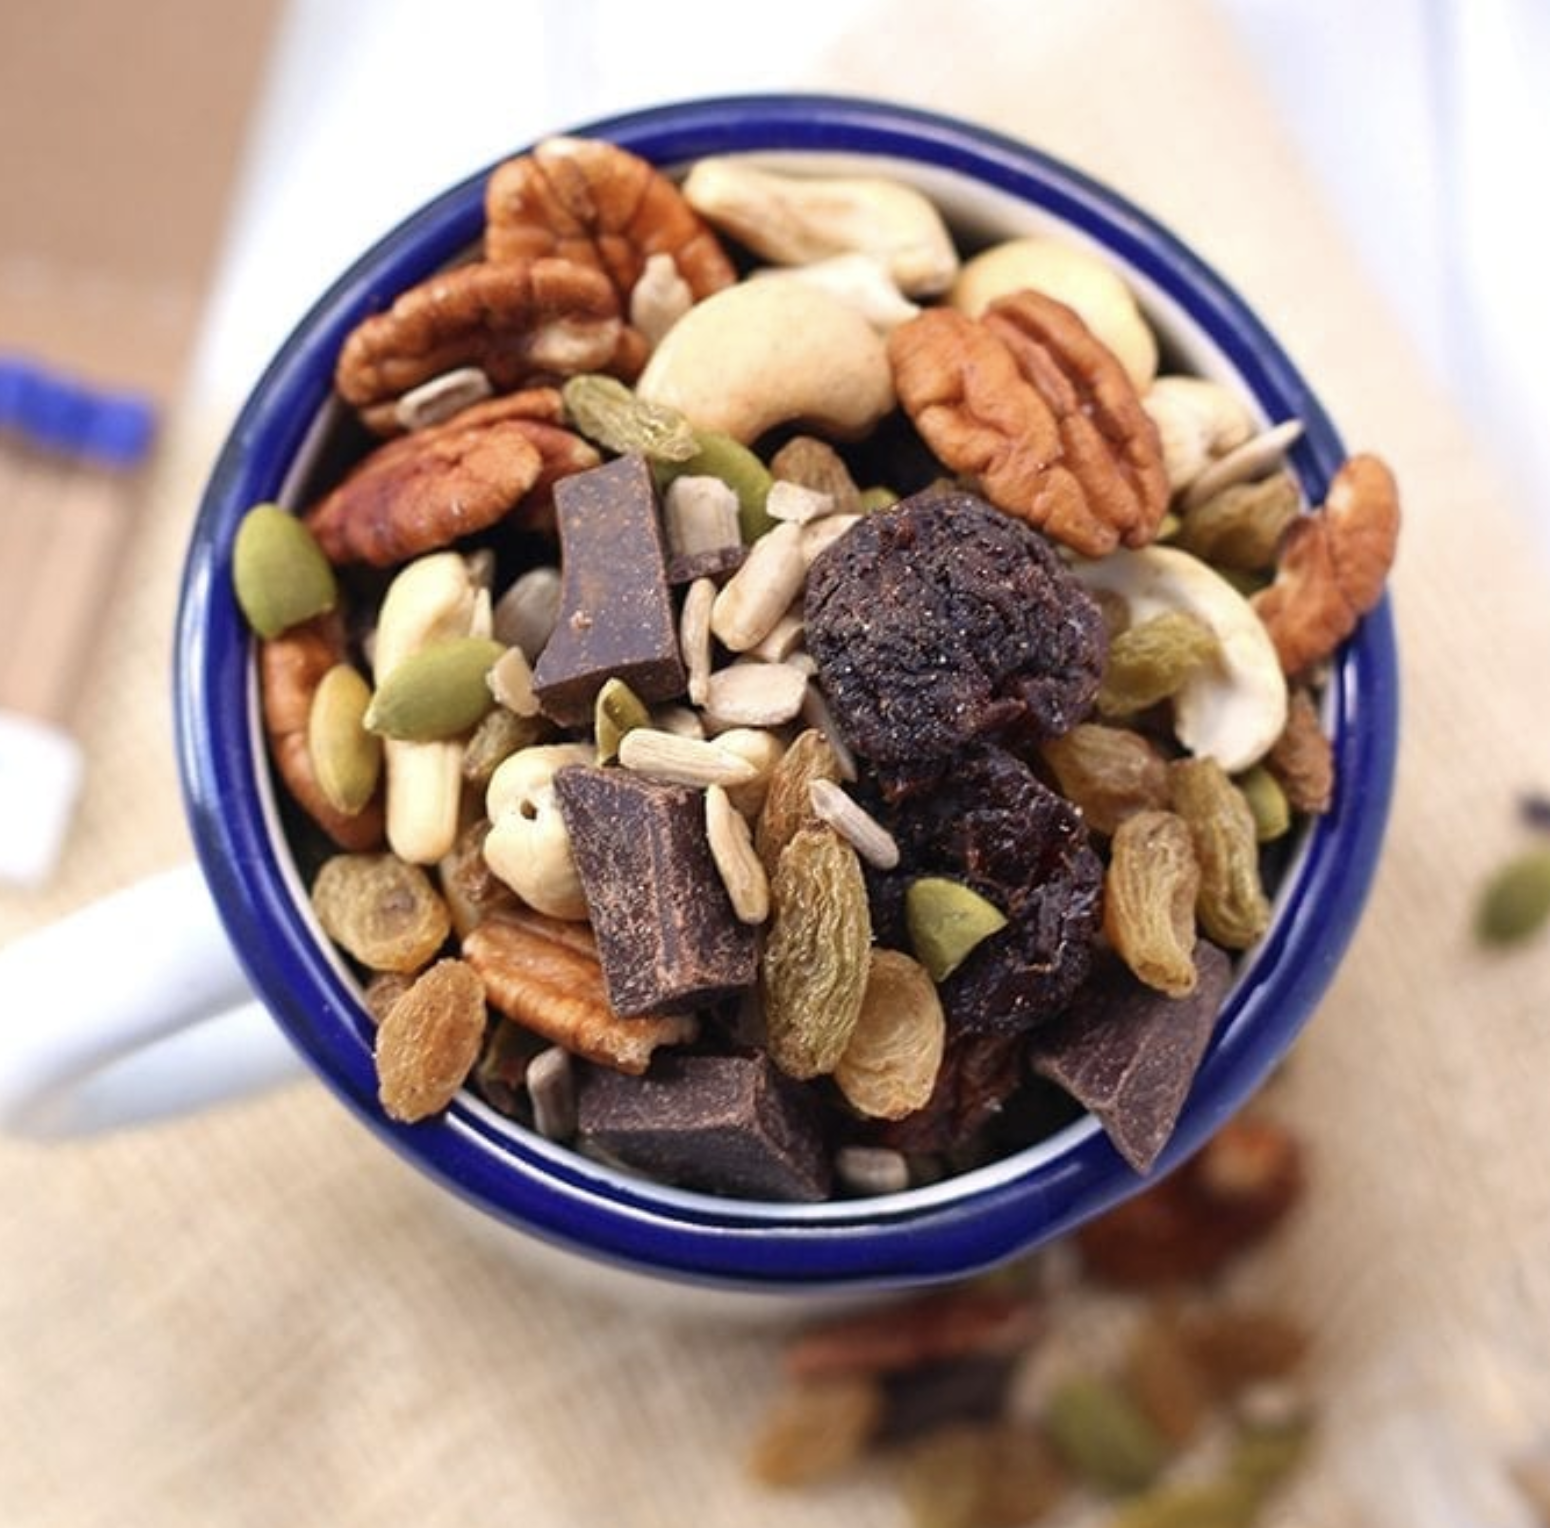 TRAIL MIX - Create your own or pick up a healthy mix at the store. Be sure to check the ingredients to ensure they are clean. You can also make trail mix cookies like these ones.